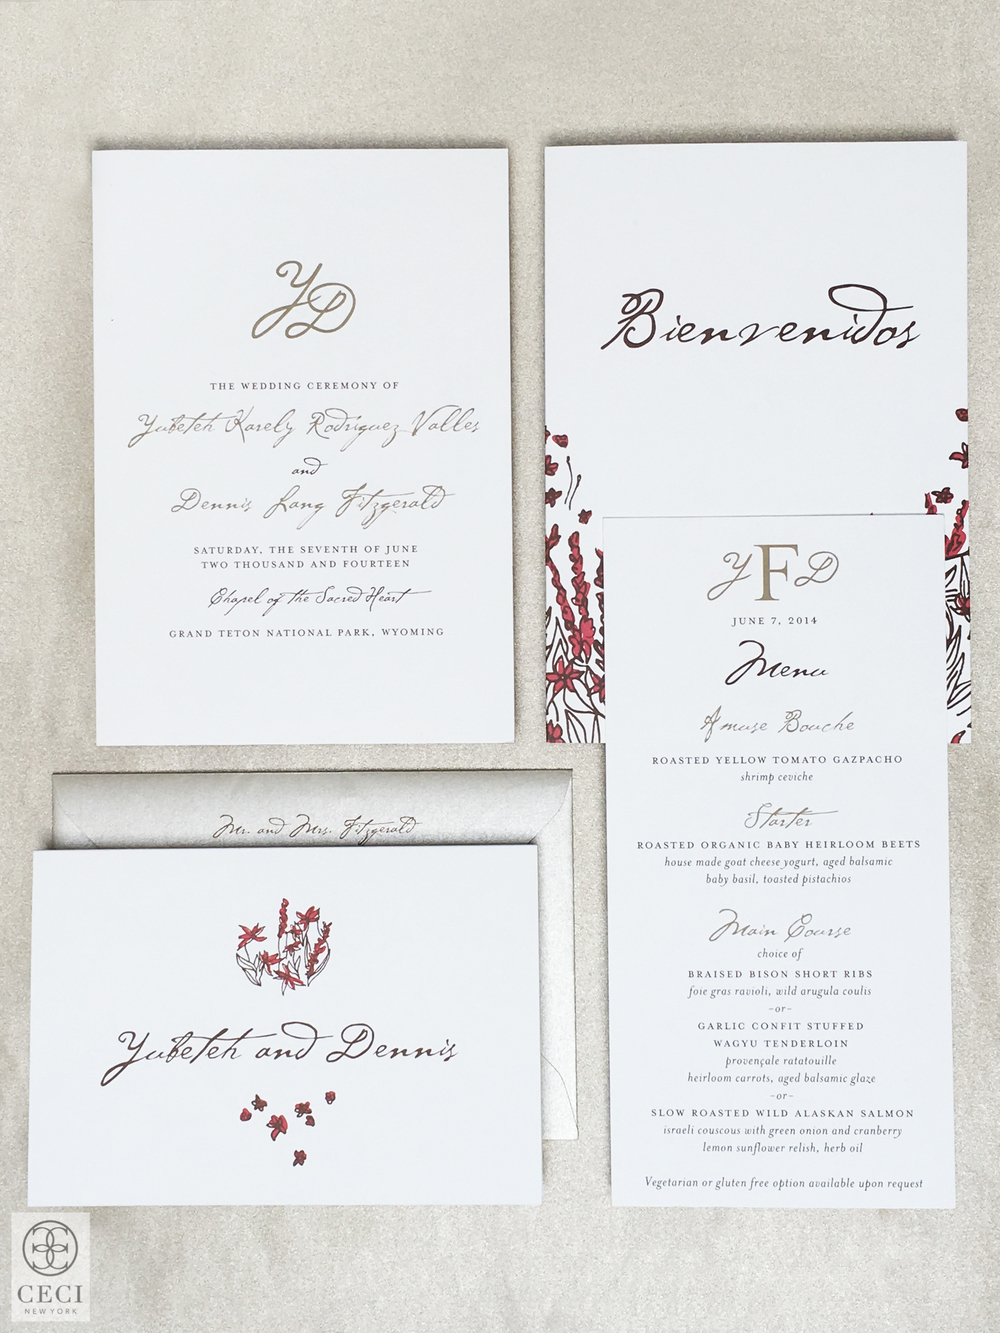 Ceci_New_York_Lyndsey_Hamilton_Events_Invitations_Wedding_Amangani_Elegance_Gold_Foil_Letterpress_Classic_Stamping_Custom_Couture_Personalized-14.jpg